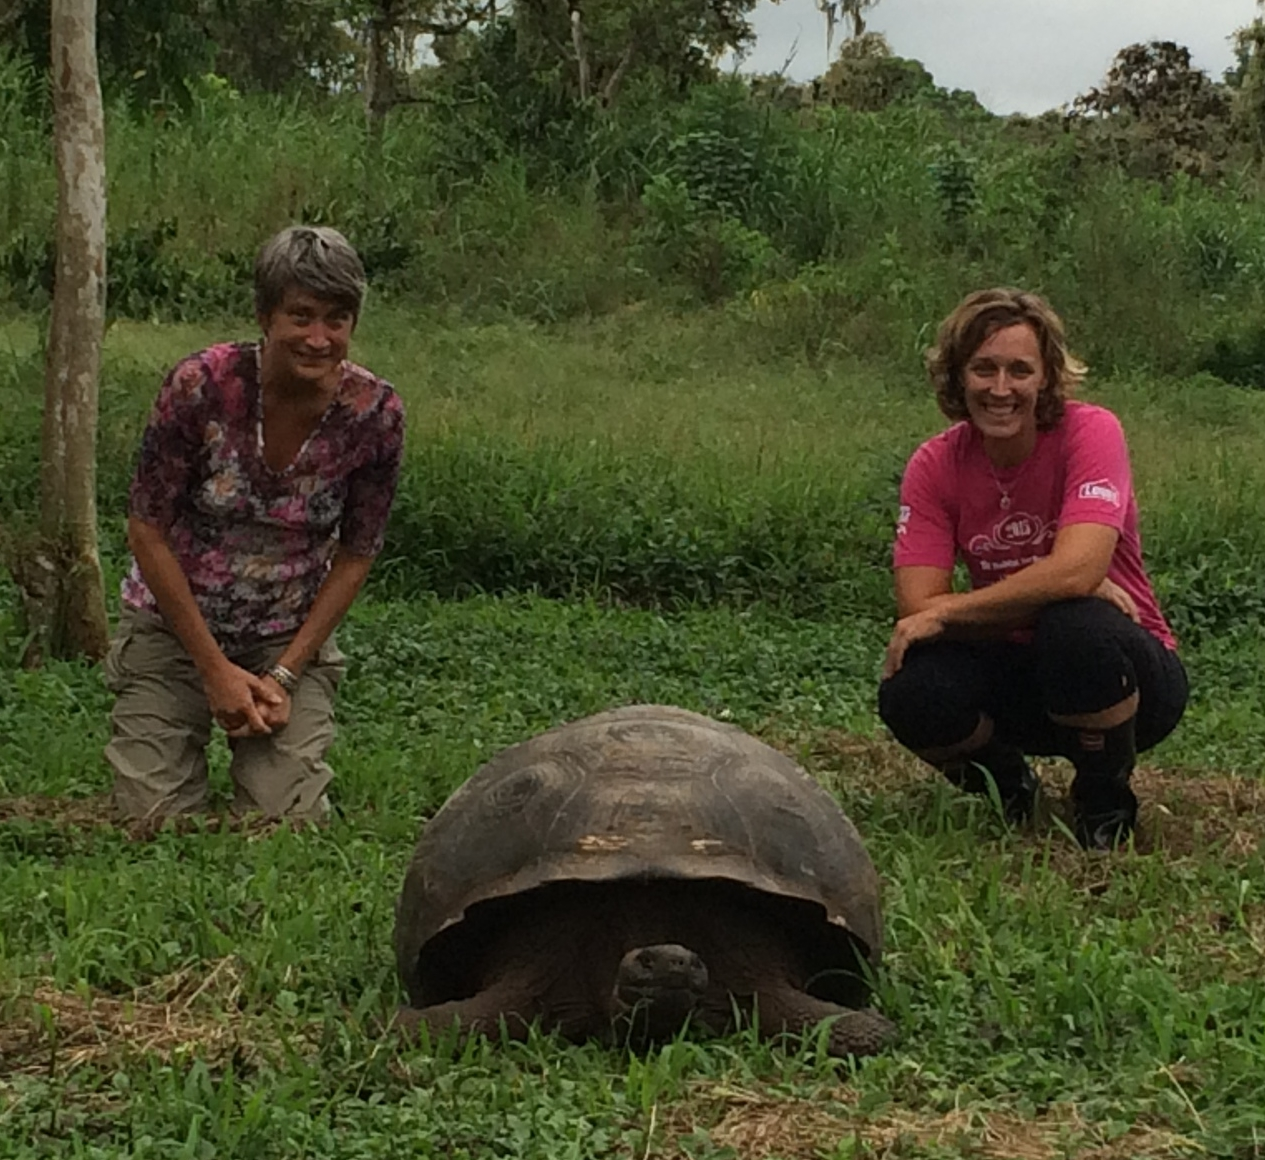 Spending time with people that matter made my list. My pal Ann, provider of many great life questions, hung out with a Turtle whose age exceeded both of ours in the Galapagos Islands this summer.